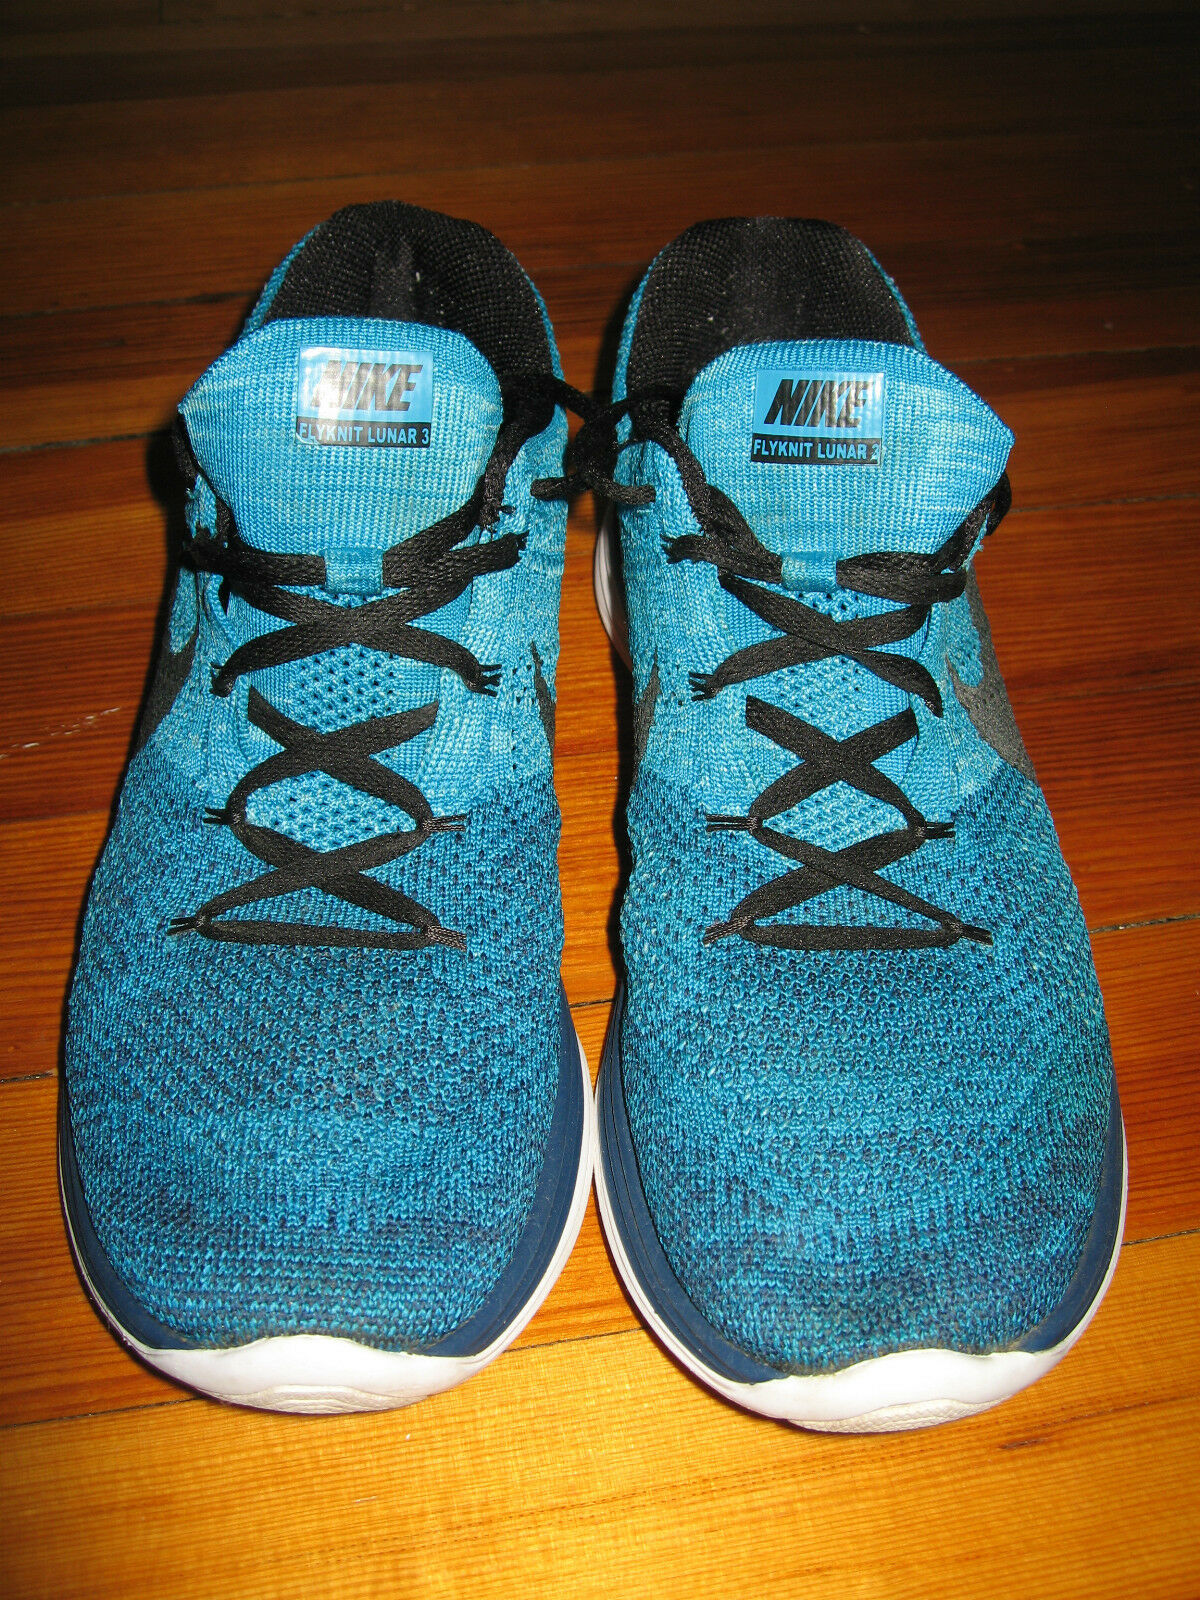 Pre-owned NIKE Flyknit Lunar 3 Blue Casual Running Sneakers Shoes Size 11